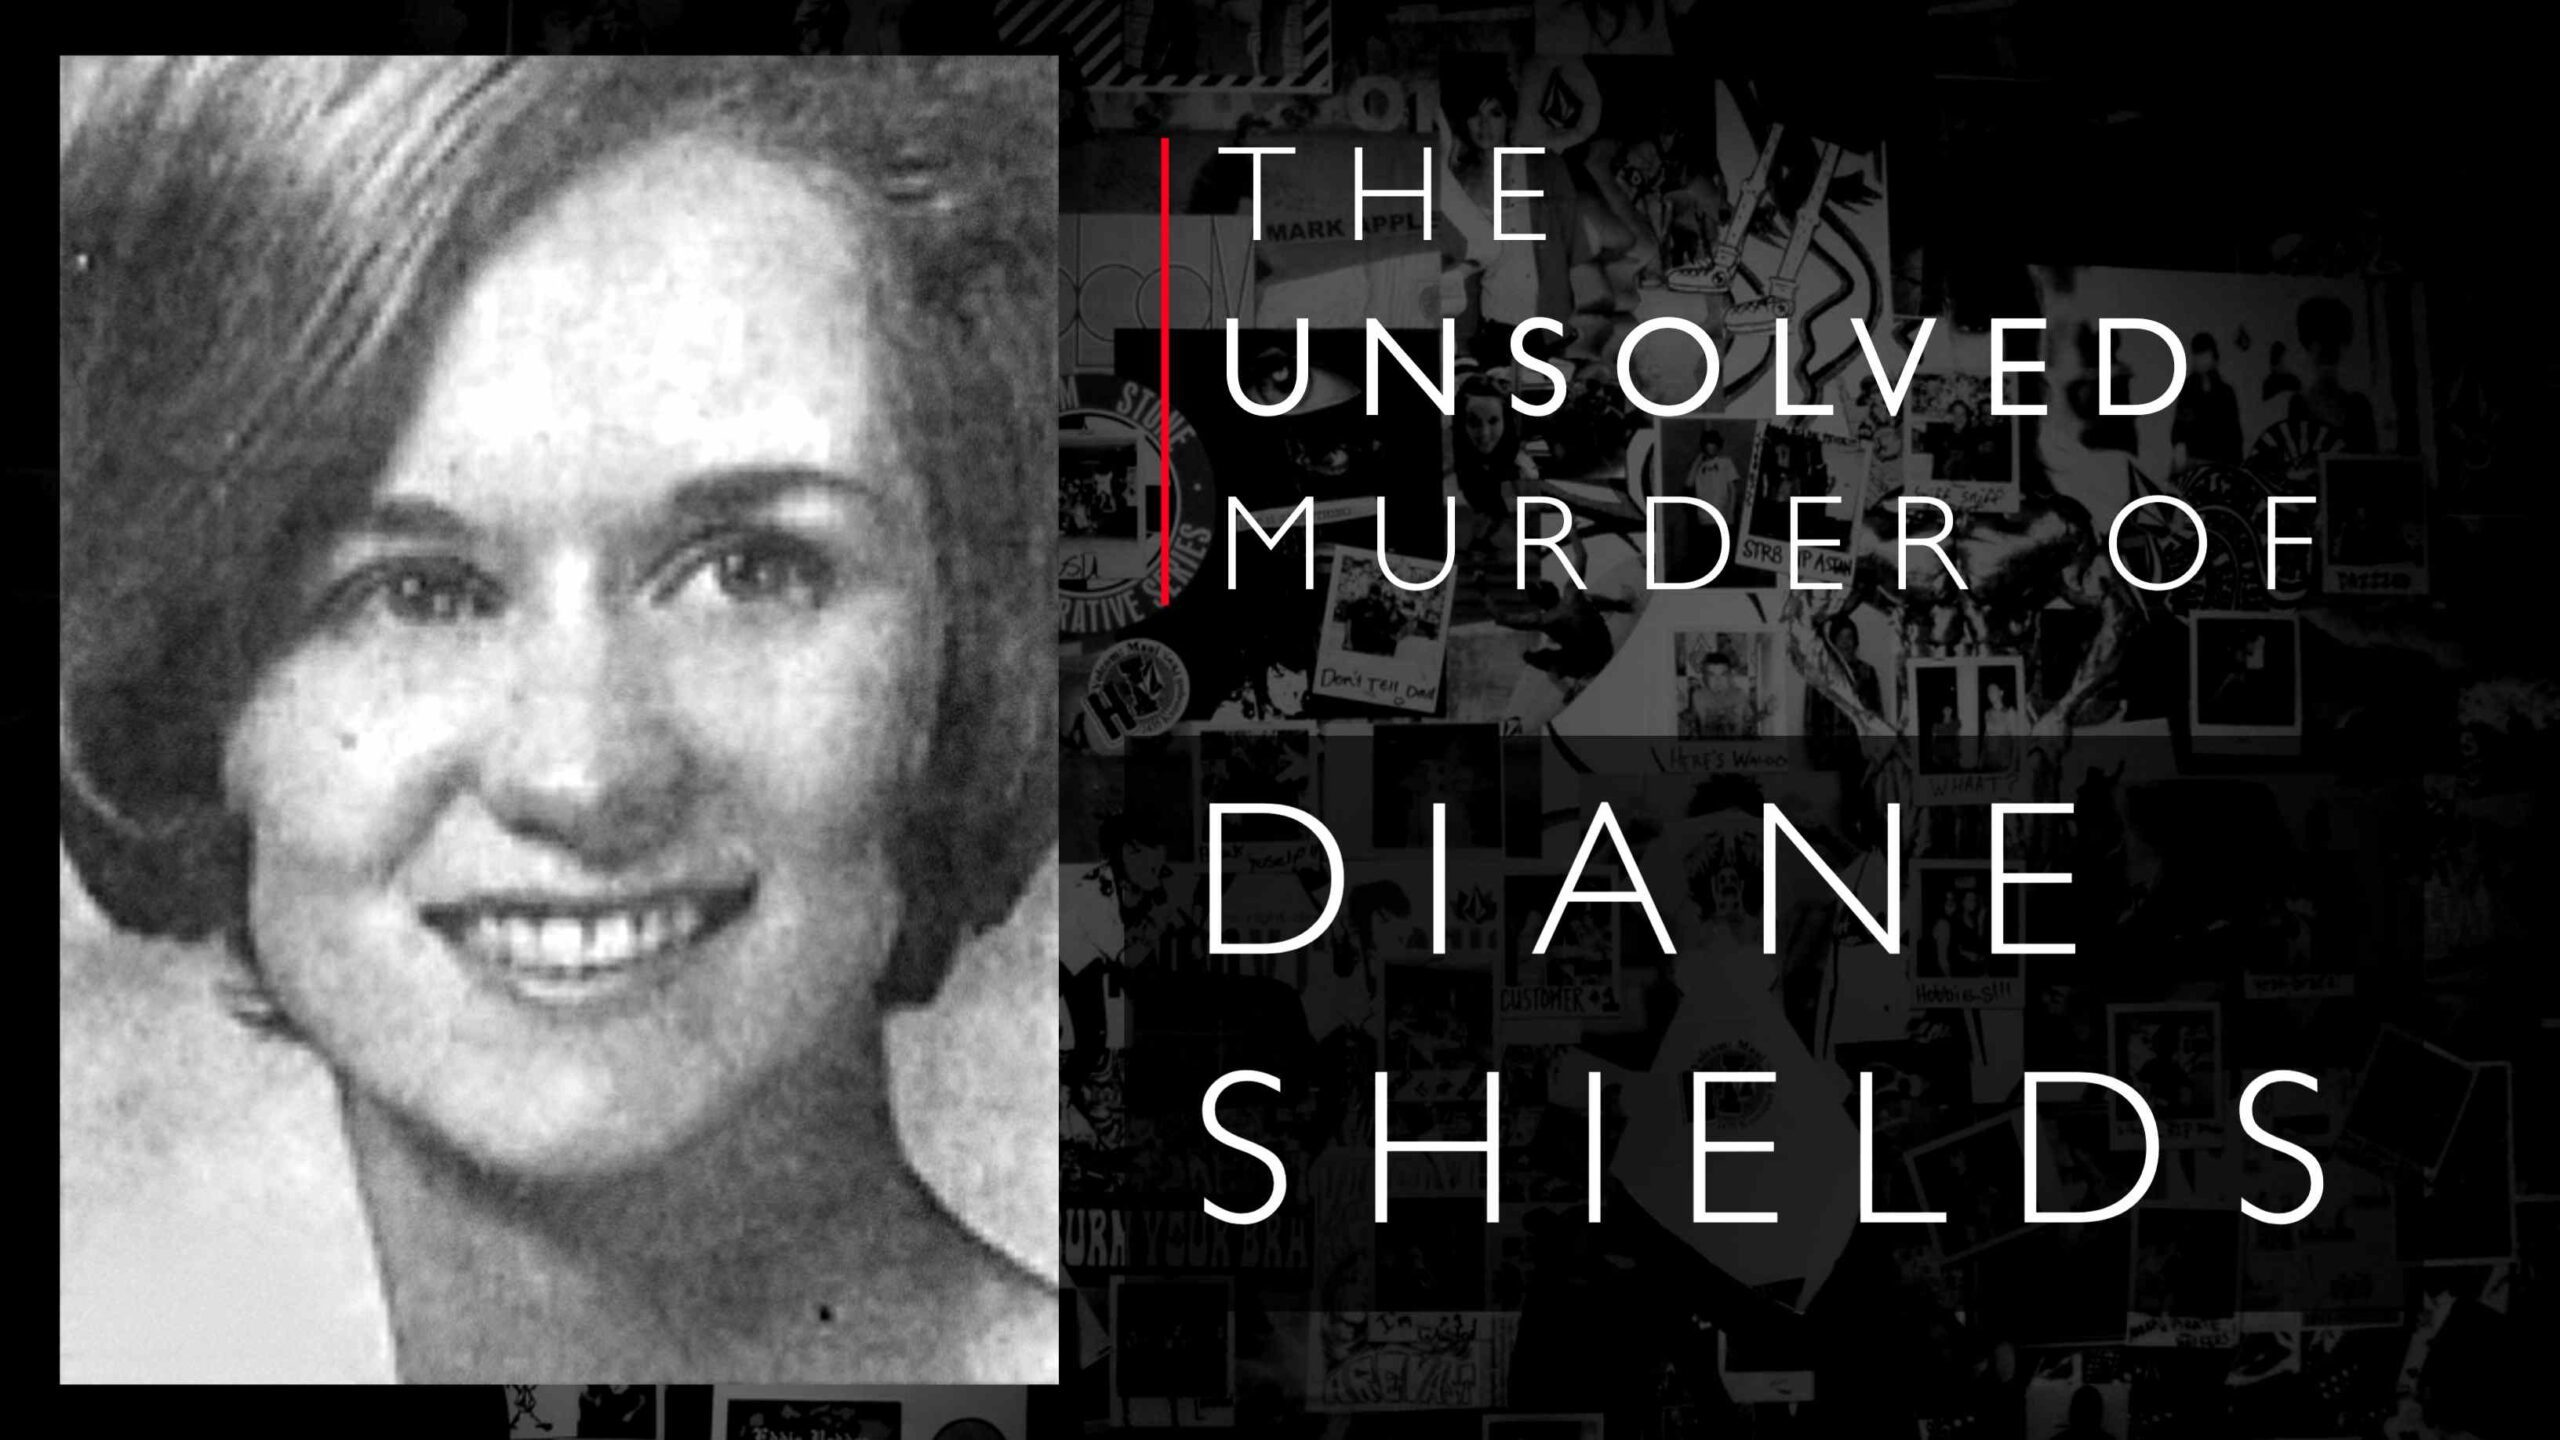 Diane Shields in some ways followed in the footsteps of Mary Shotwell Little, then was found murdered.